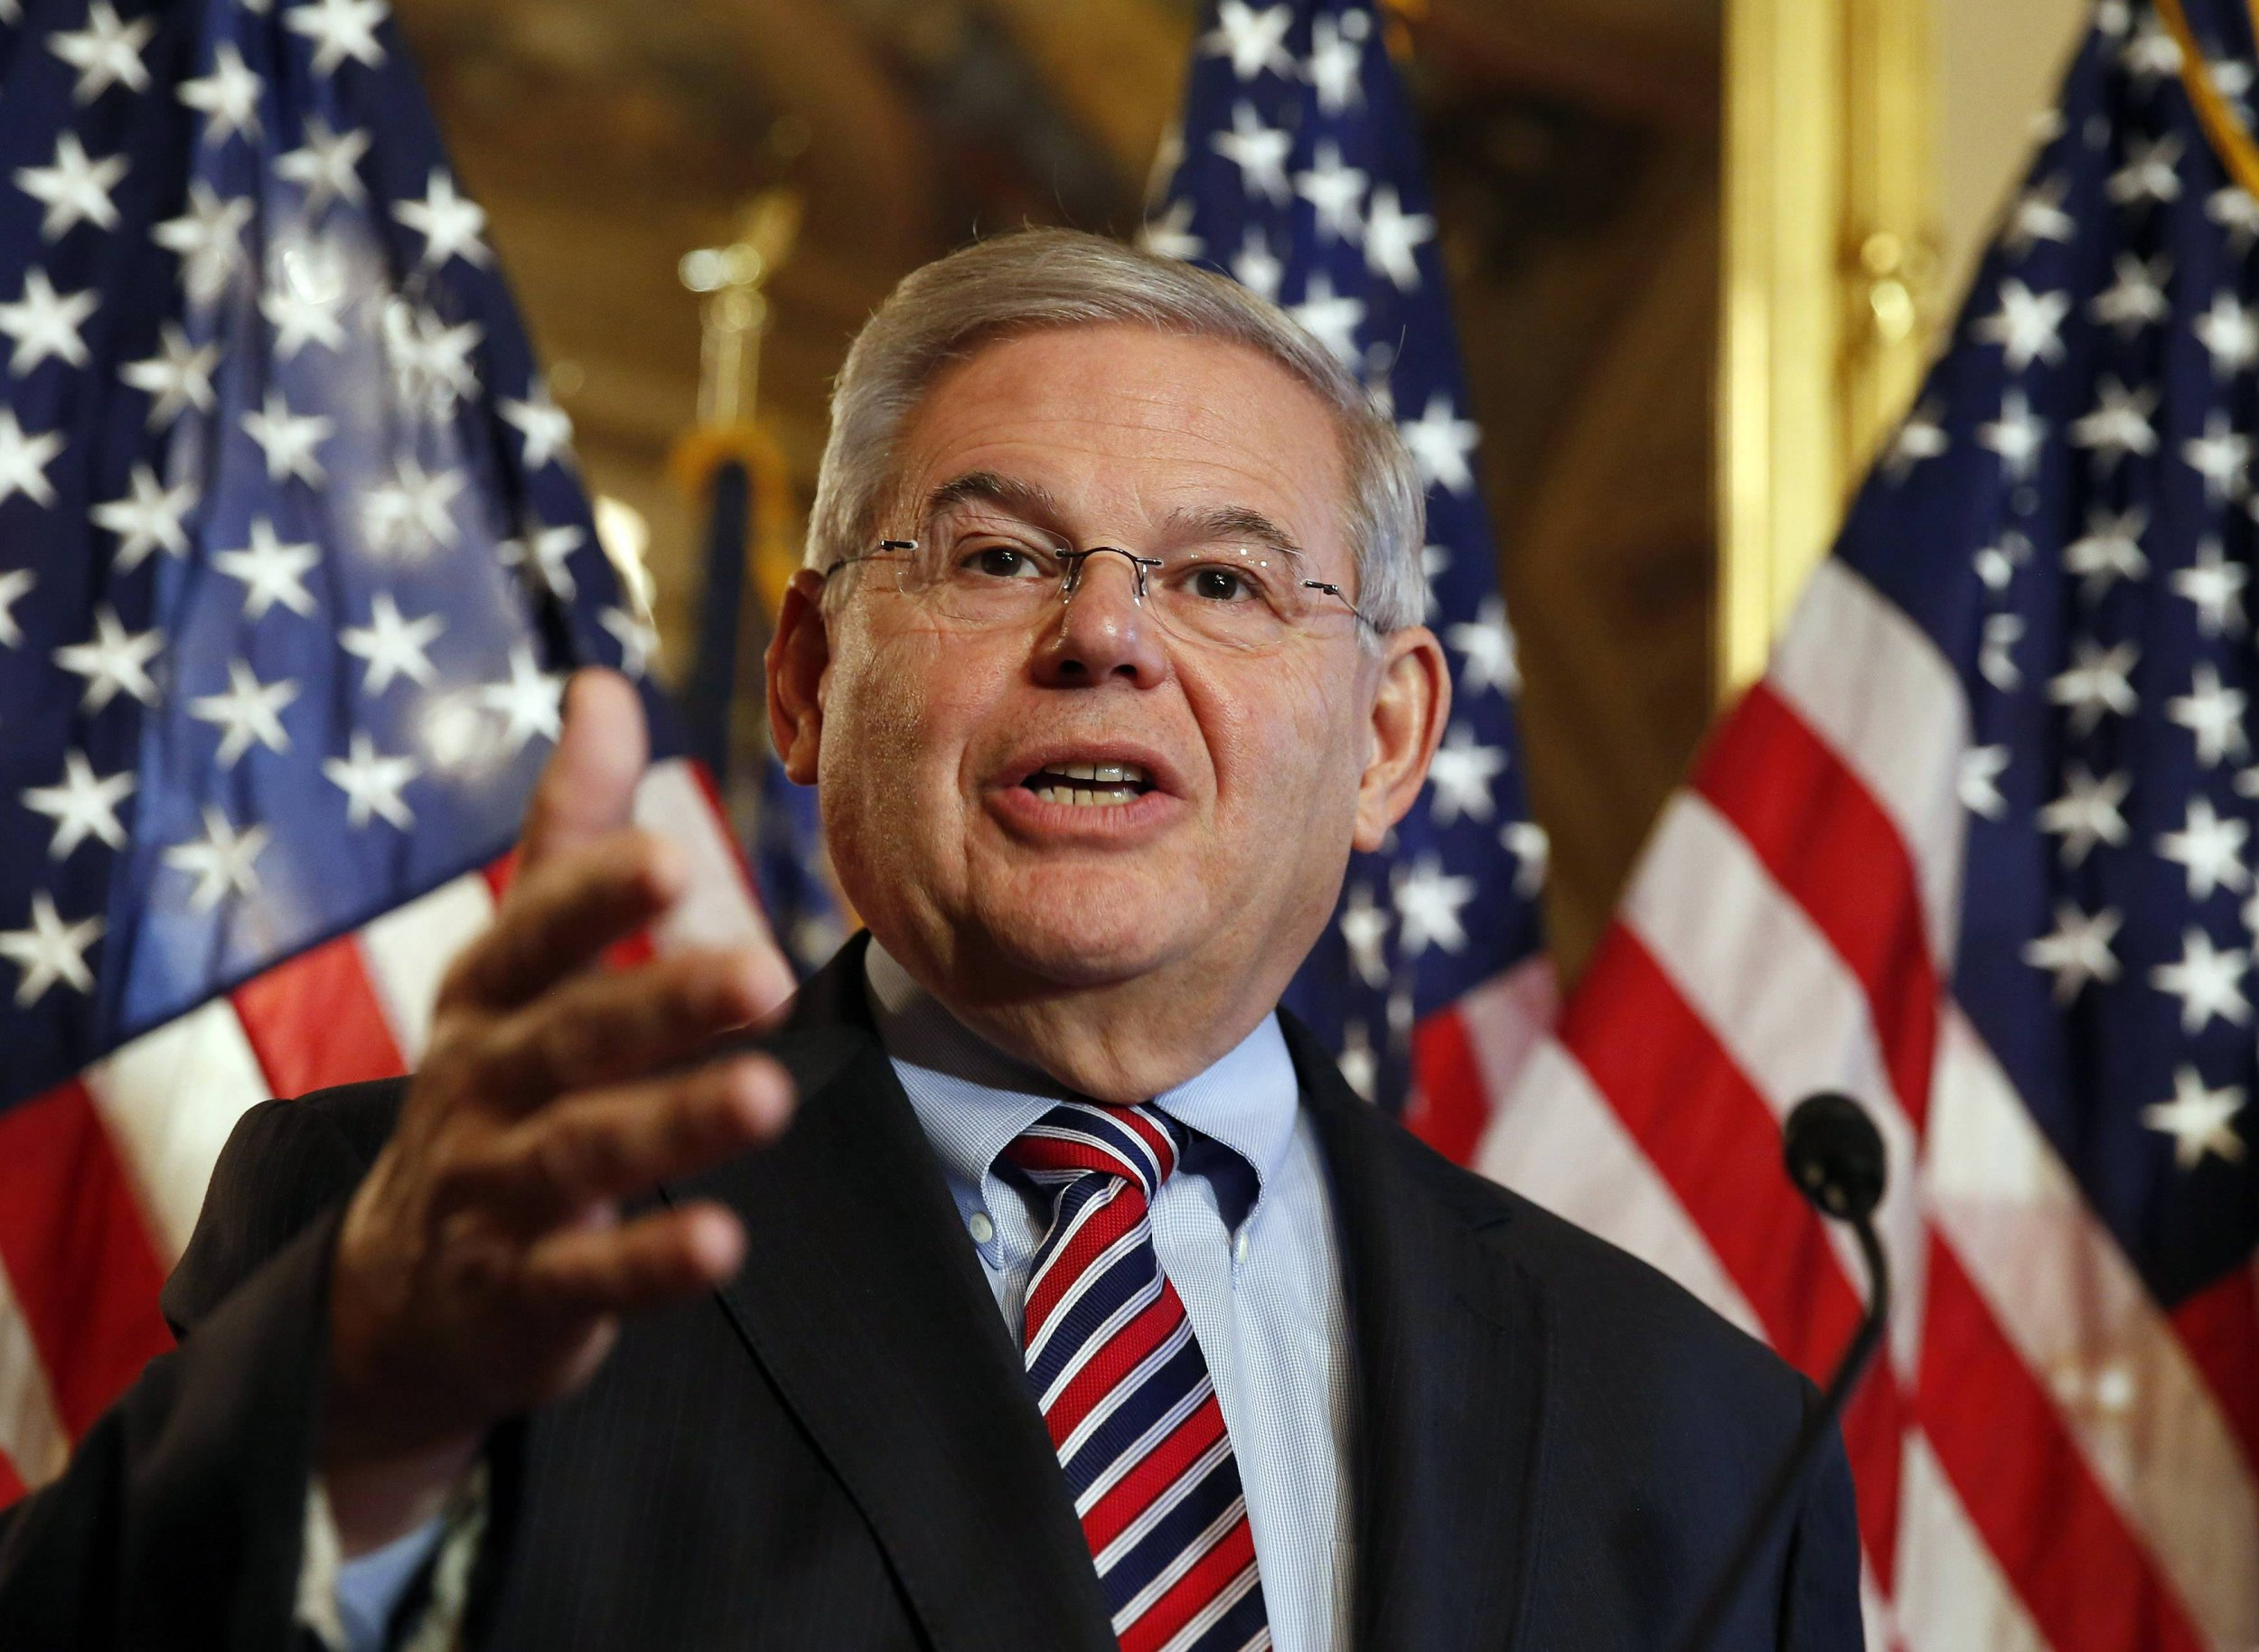 Robert Menendez to face charges: CNN